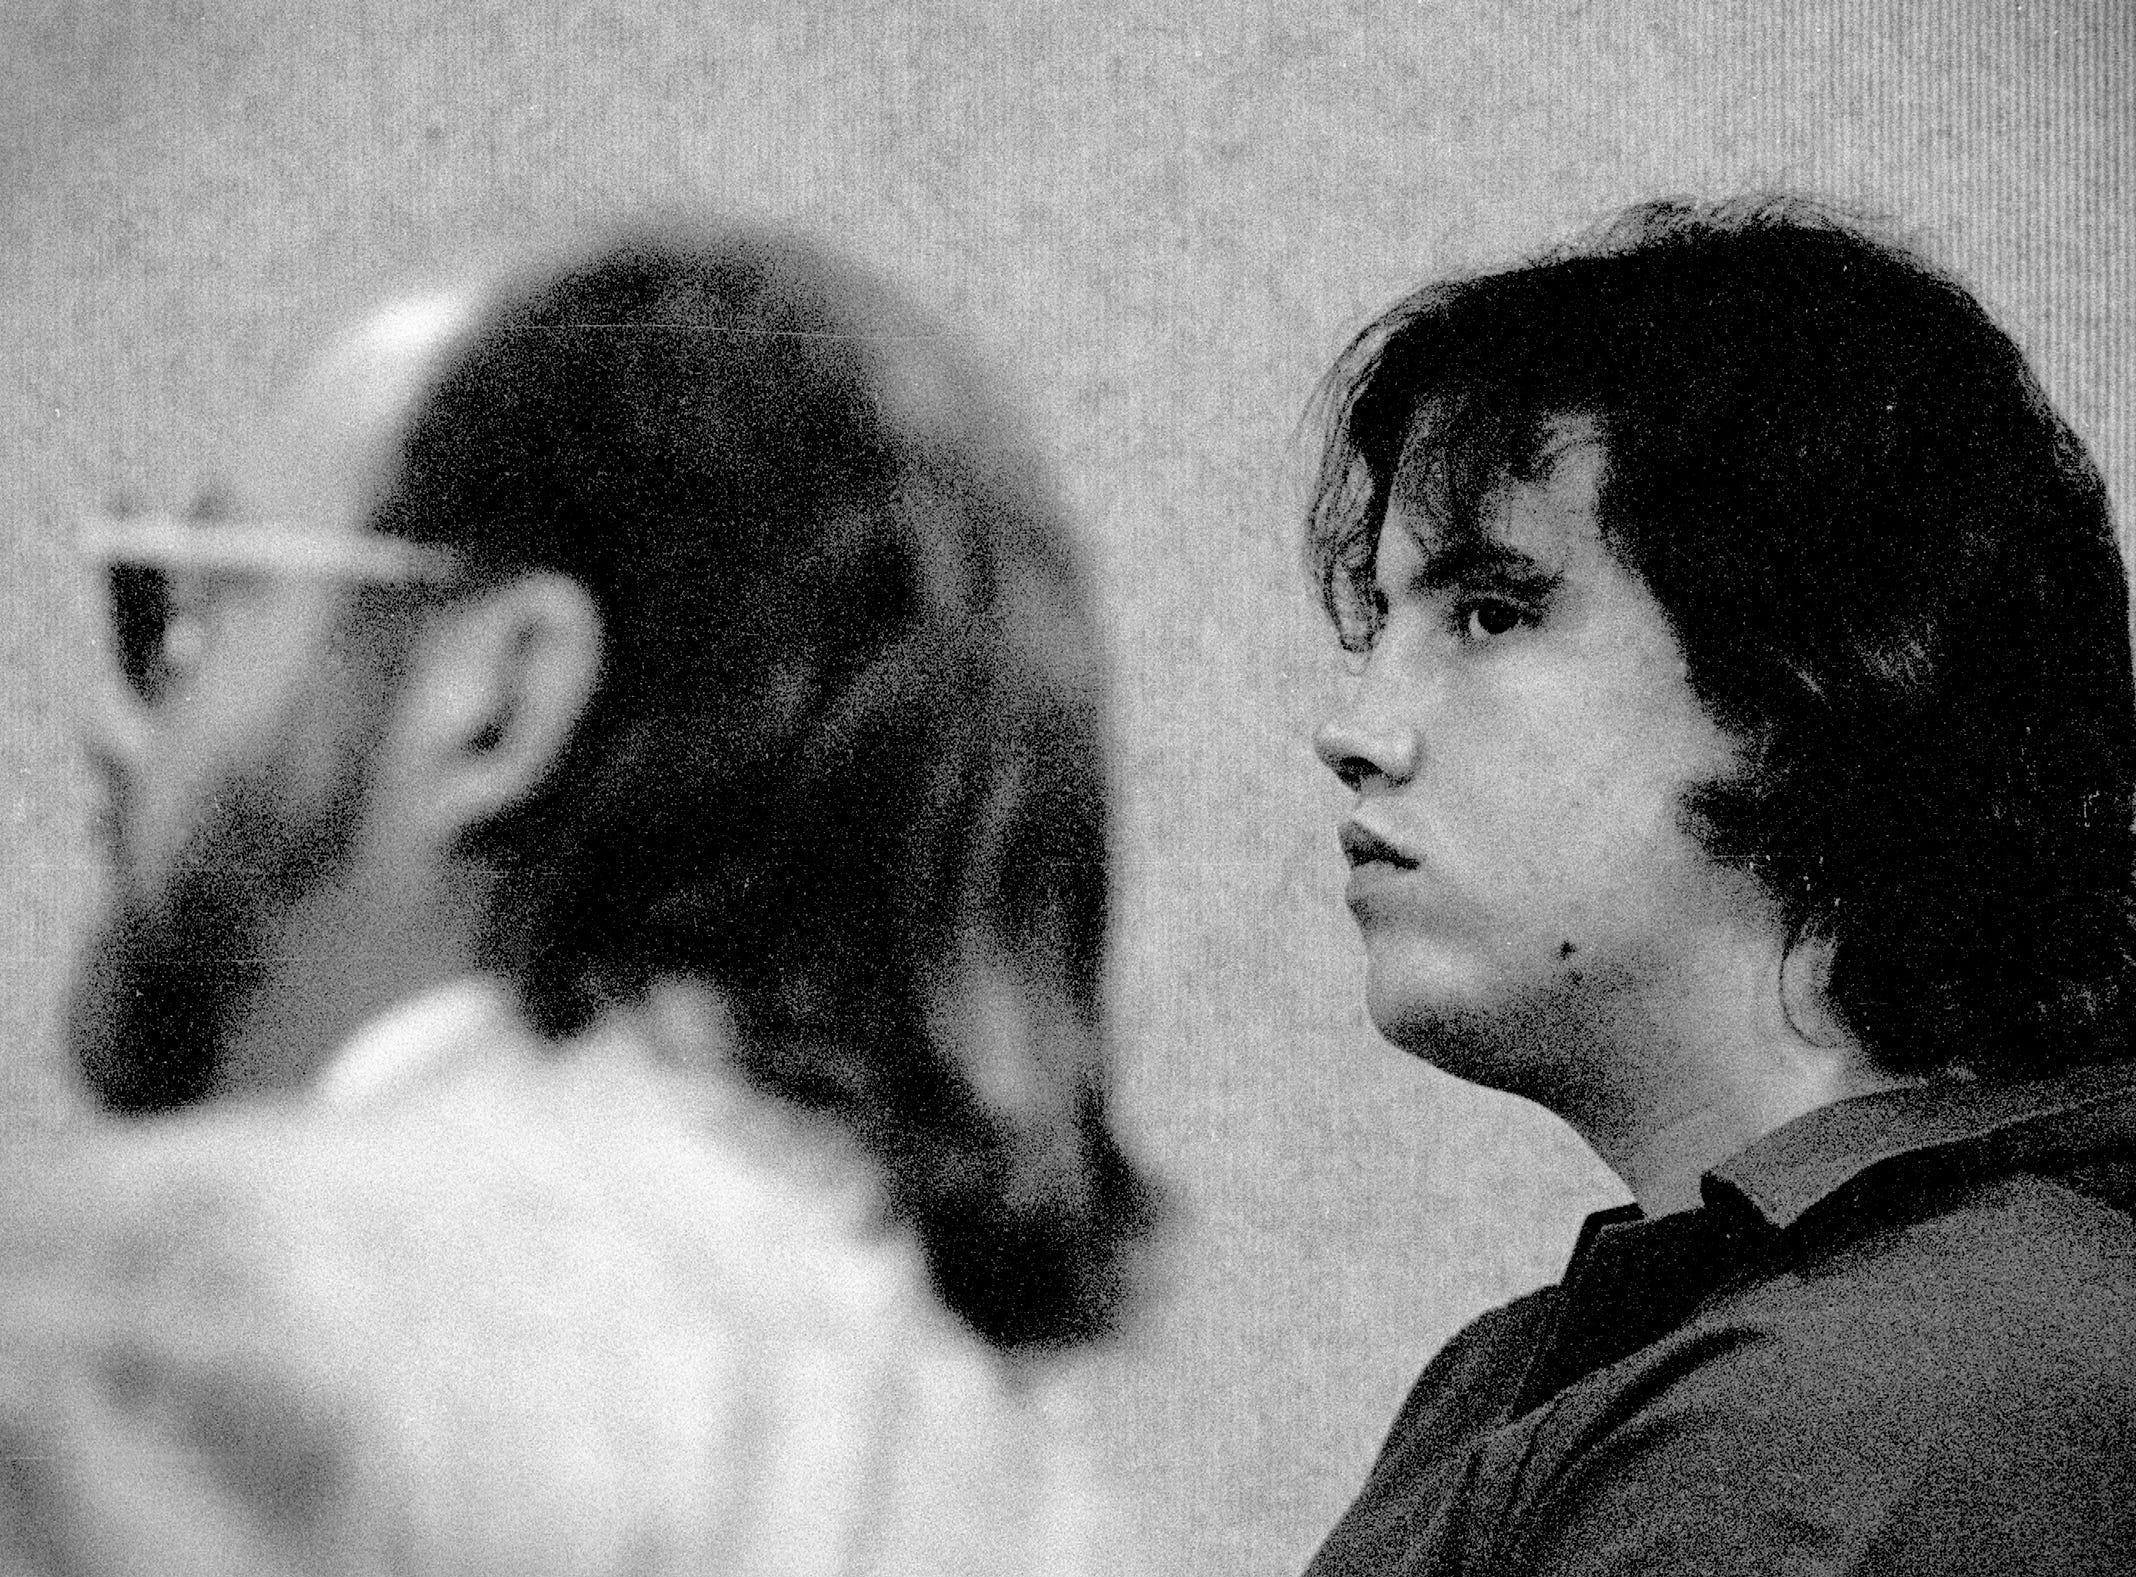 July 31, 1990 - Thomas Wyatt (right), most known for the Domino's Pizza murders, appeared in court where he and his co-defendant in the murder case, Michael Lovette, were ordered by Circuit Judge Dwight Geiger to be tried separately. The triple murders in the pizza store on State Road 60 were committed in May 1988, in Vero Beach. Wyatt had been convicted and was on death row awaiting execution when he died of natural causes in February 2013.